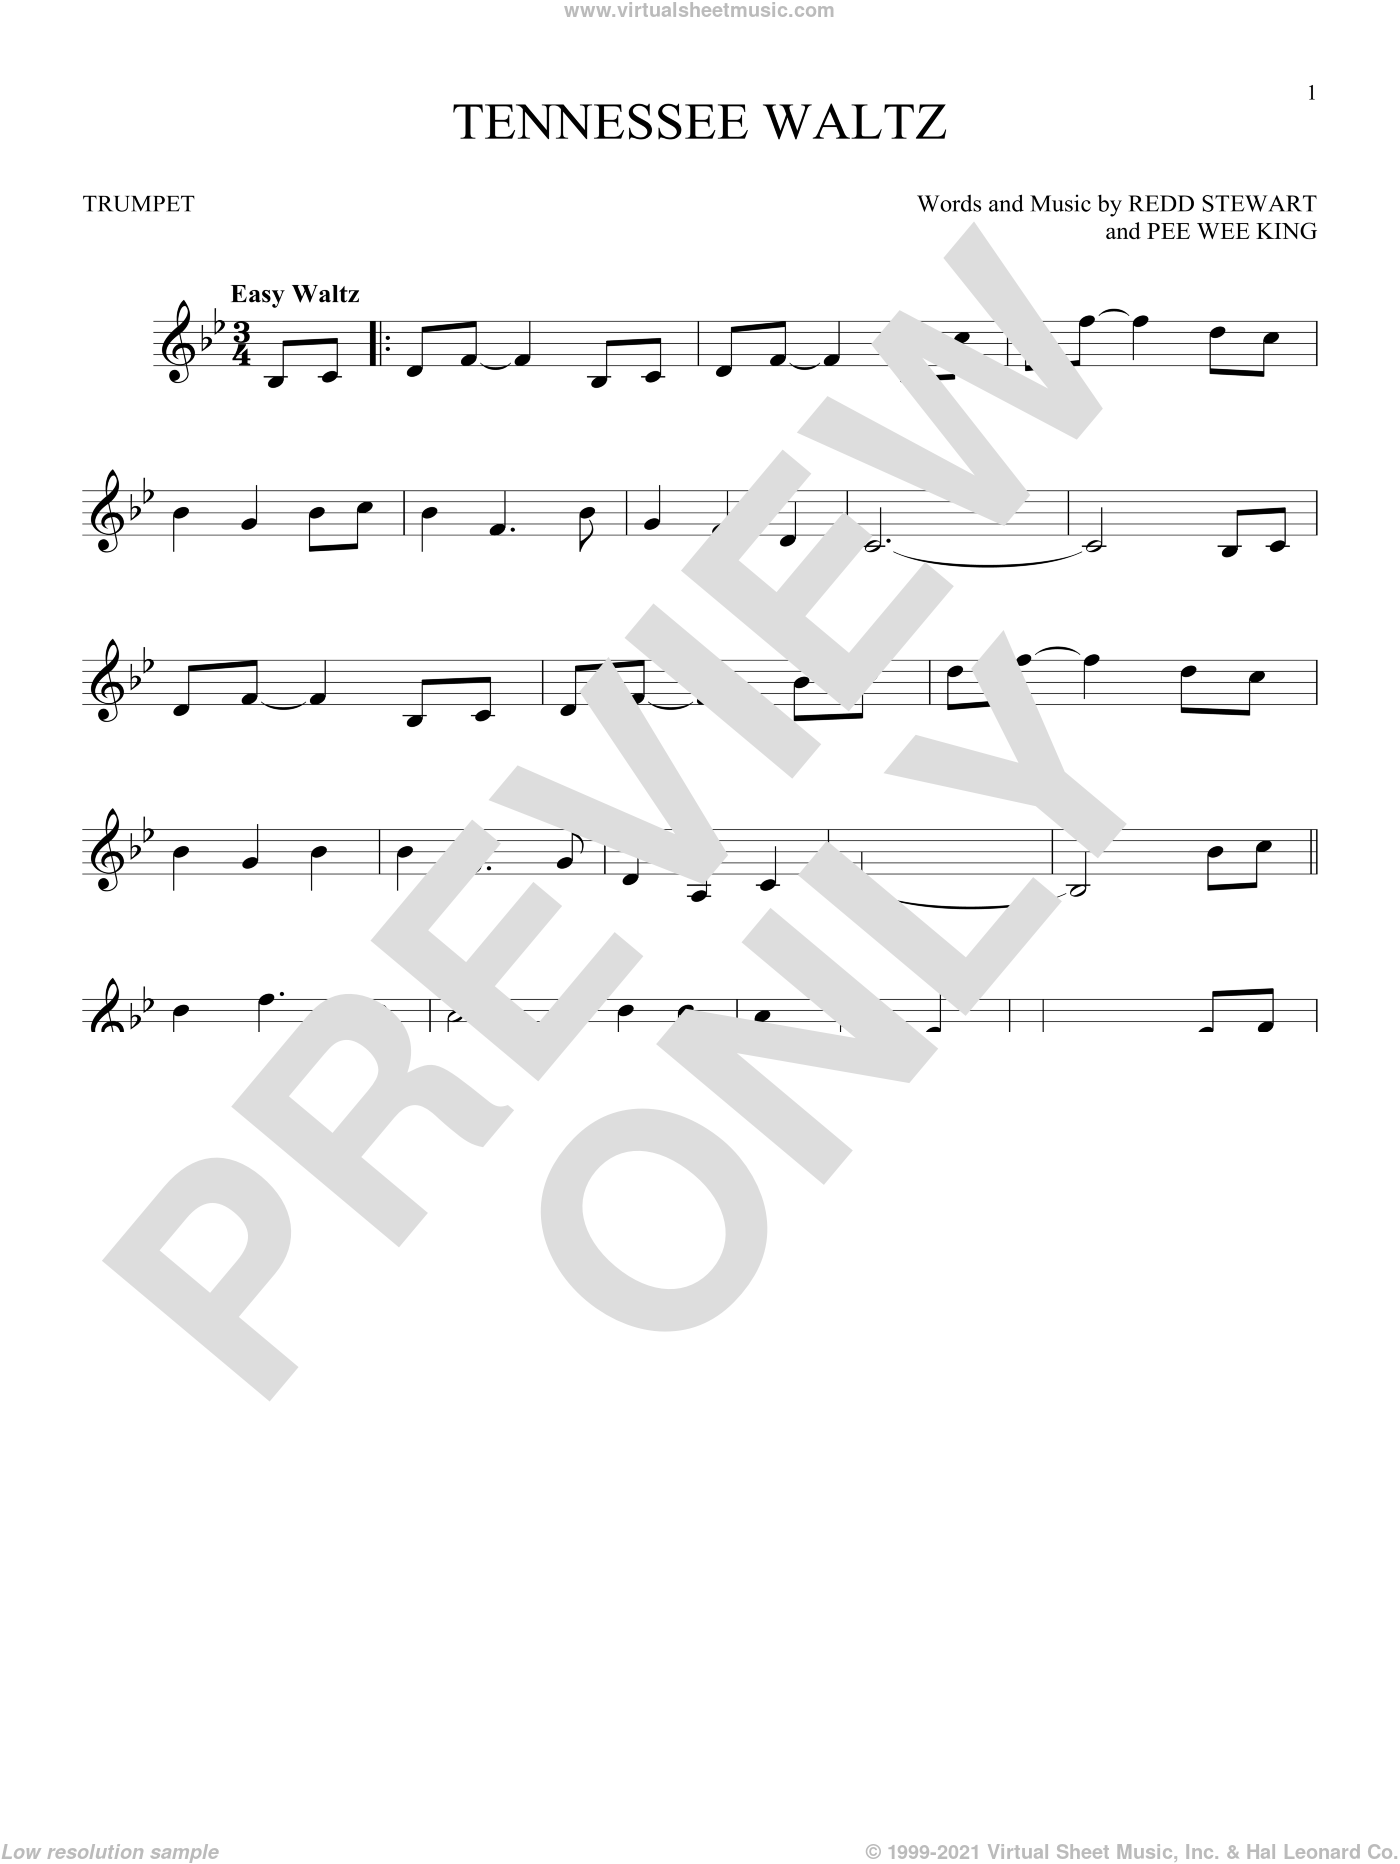 Tennessee Waltz sheet music for trumpet solo by Pee Wee King, Patti Page, Patty Page and Redd Stewart, intermediate skill level